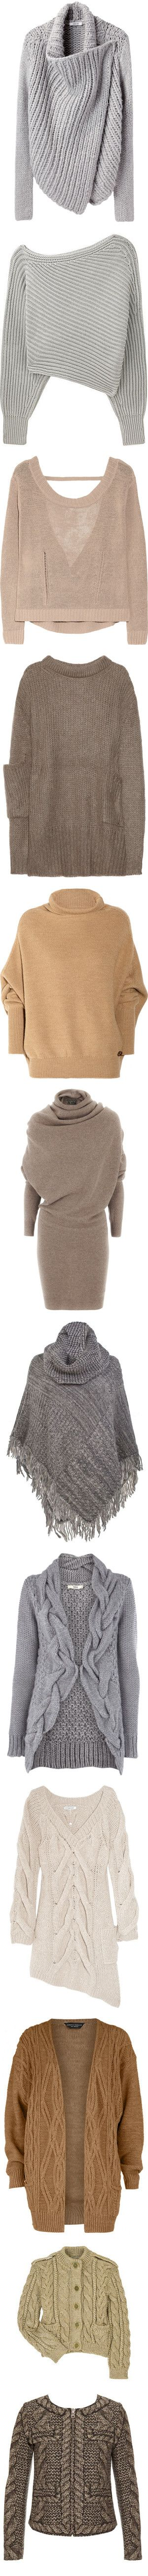 Knit by olivia-richter on Polyvore featuring tops, cardigans, sweaters, outerwear, jackets, long grey cardigan, long cardigan, long sleeve cardigan, slim fit cardigan and long tops